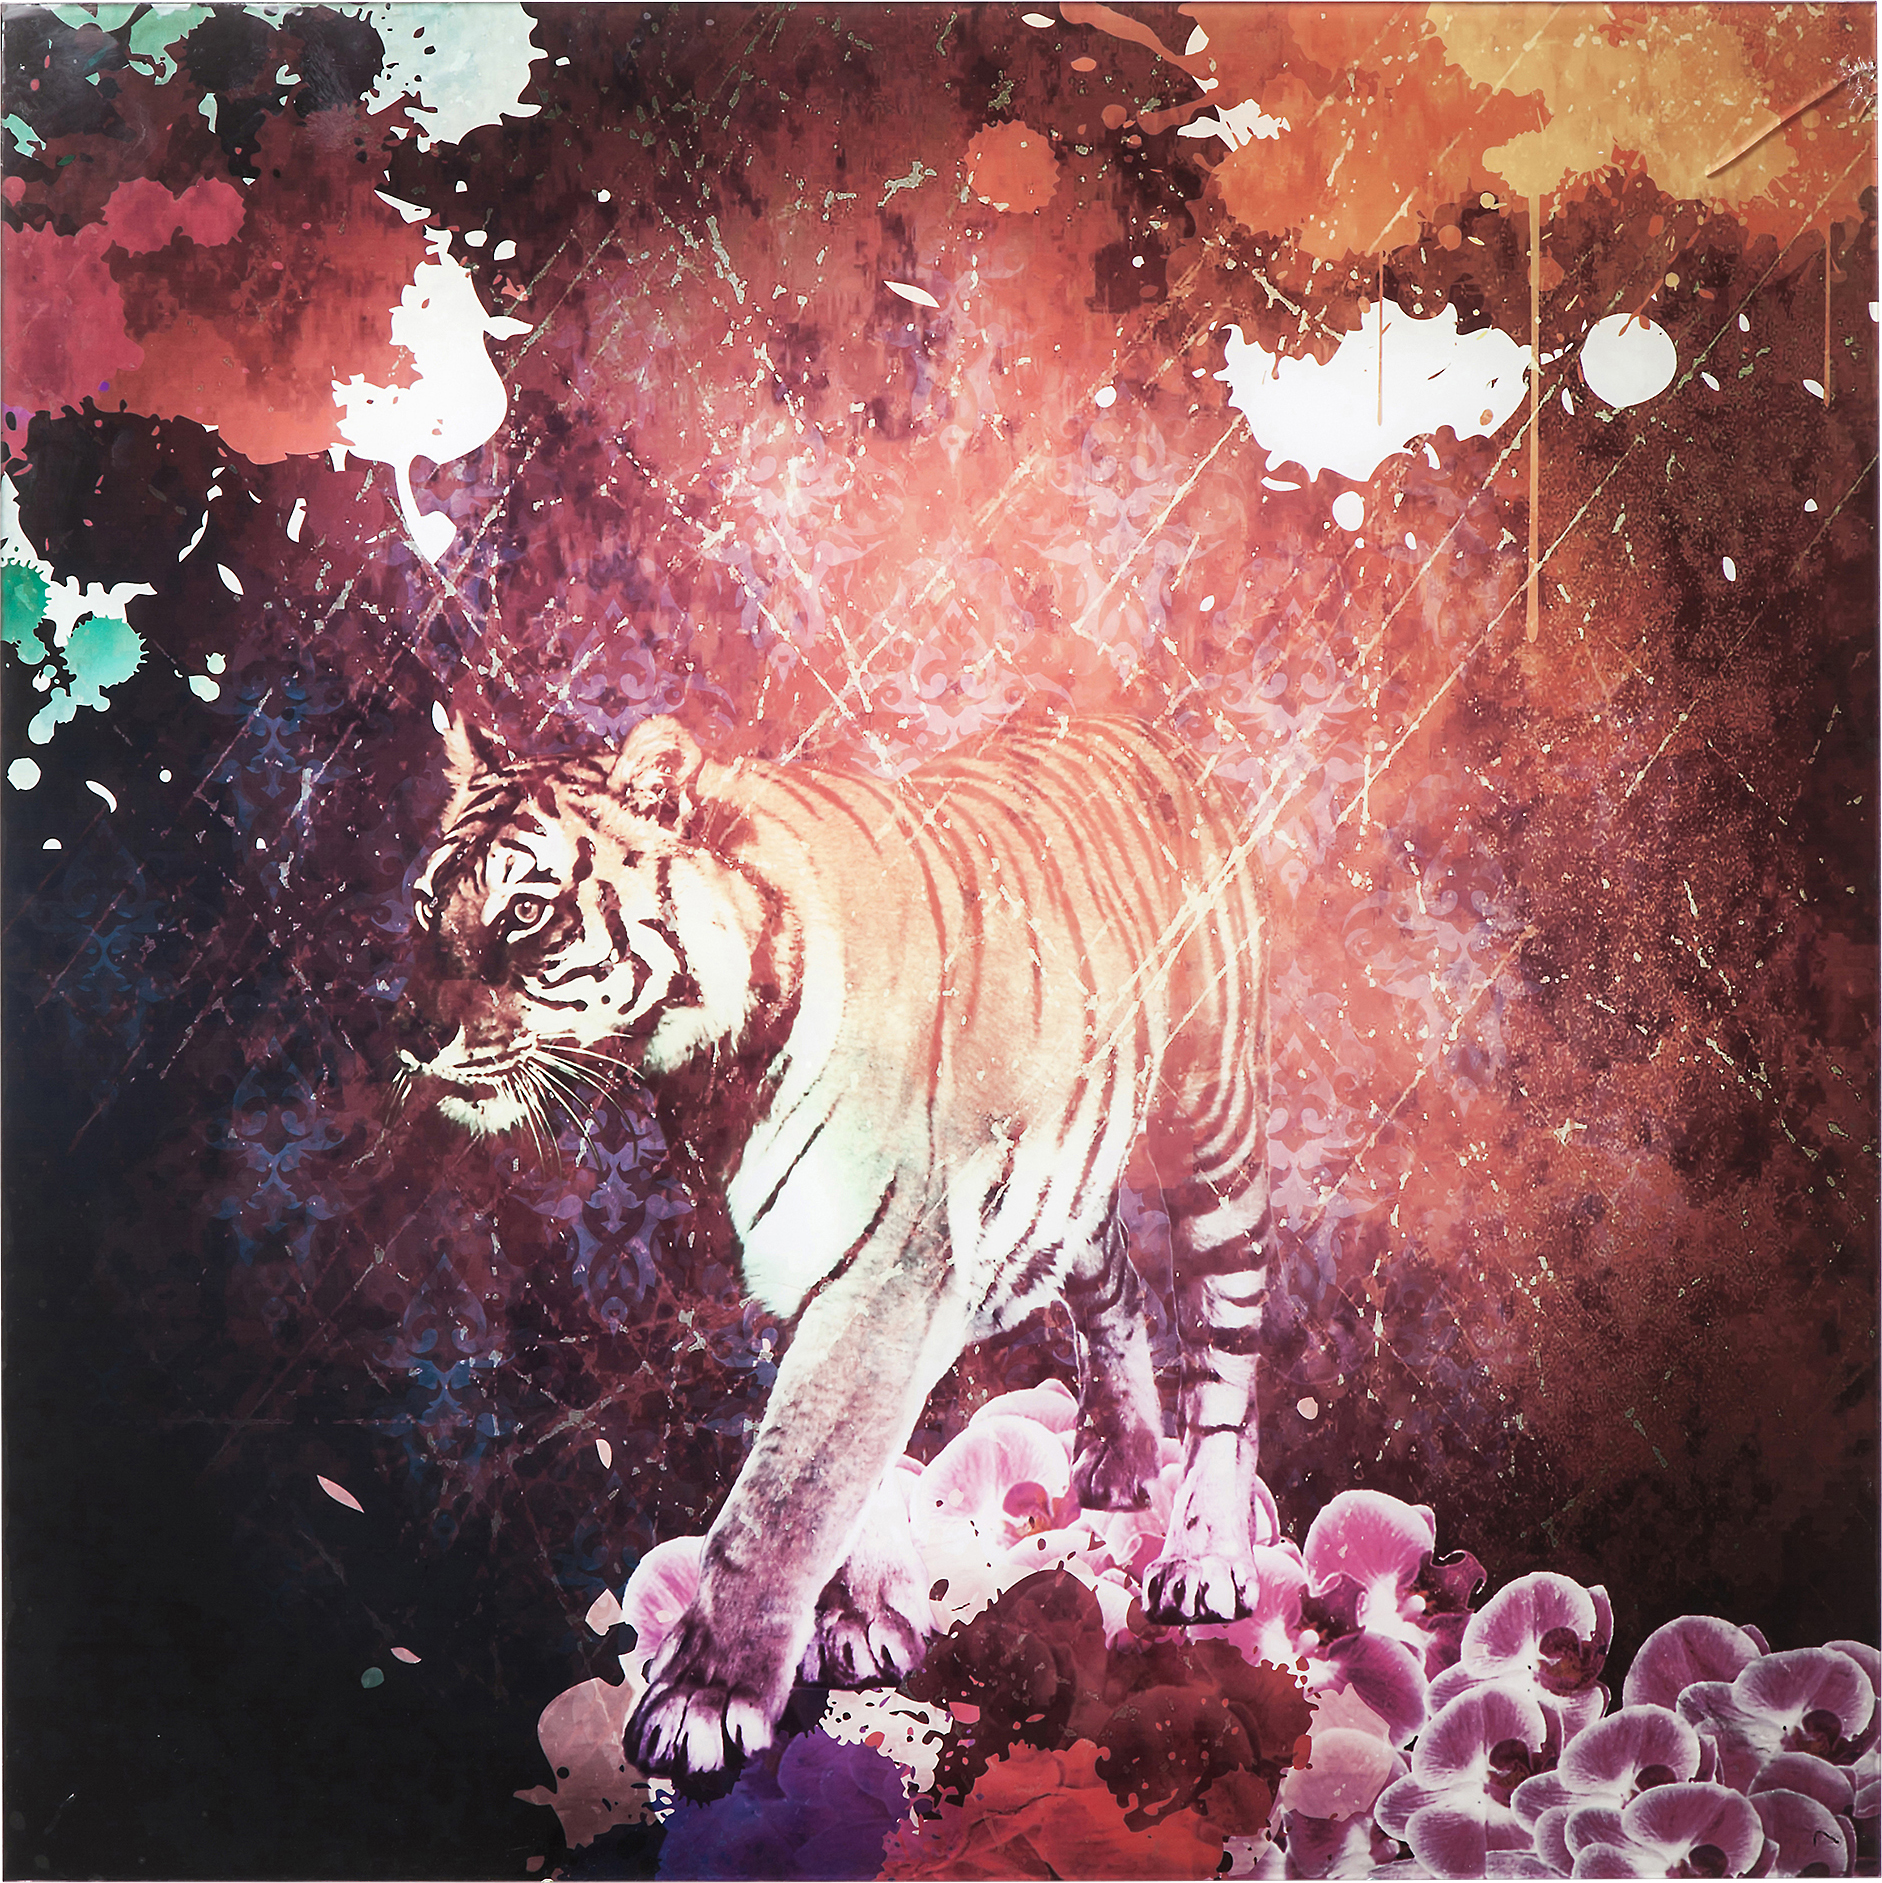 Picture The Tiger by Mayk Azzato